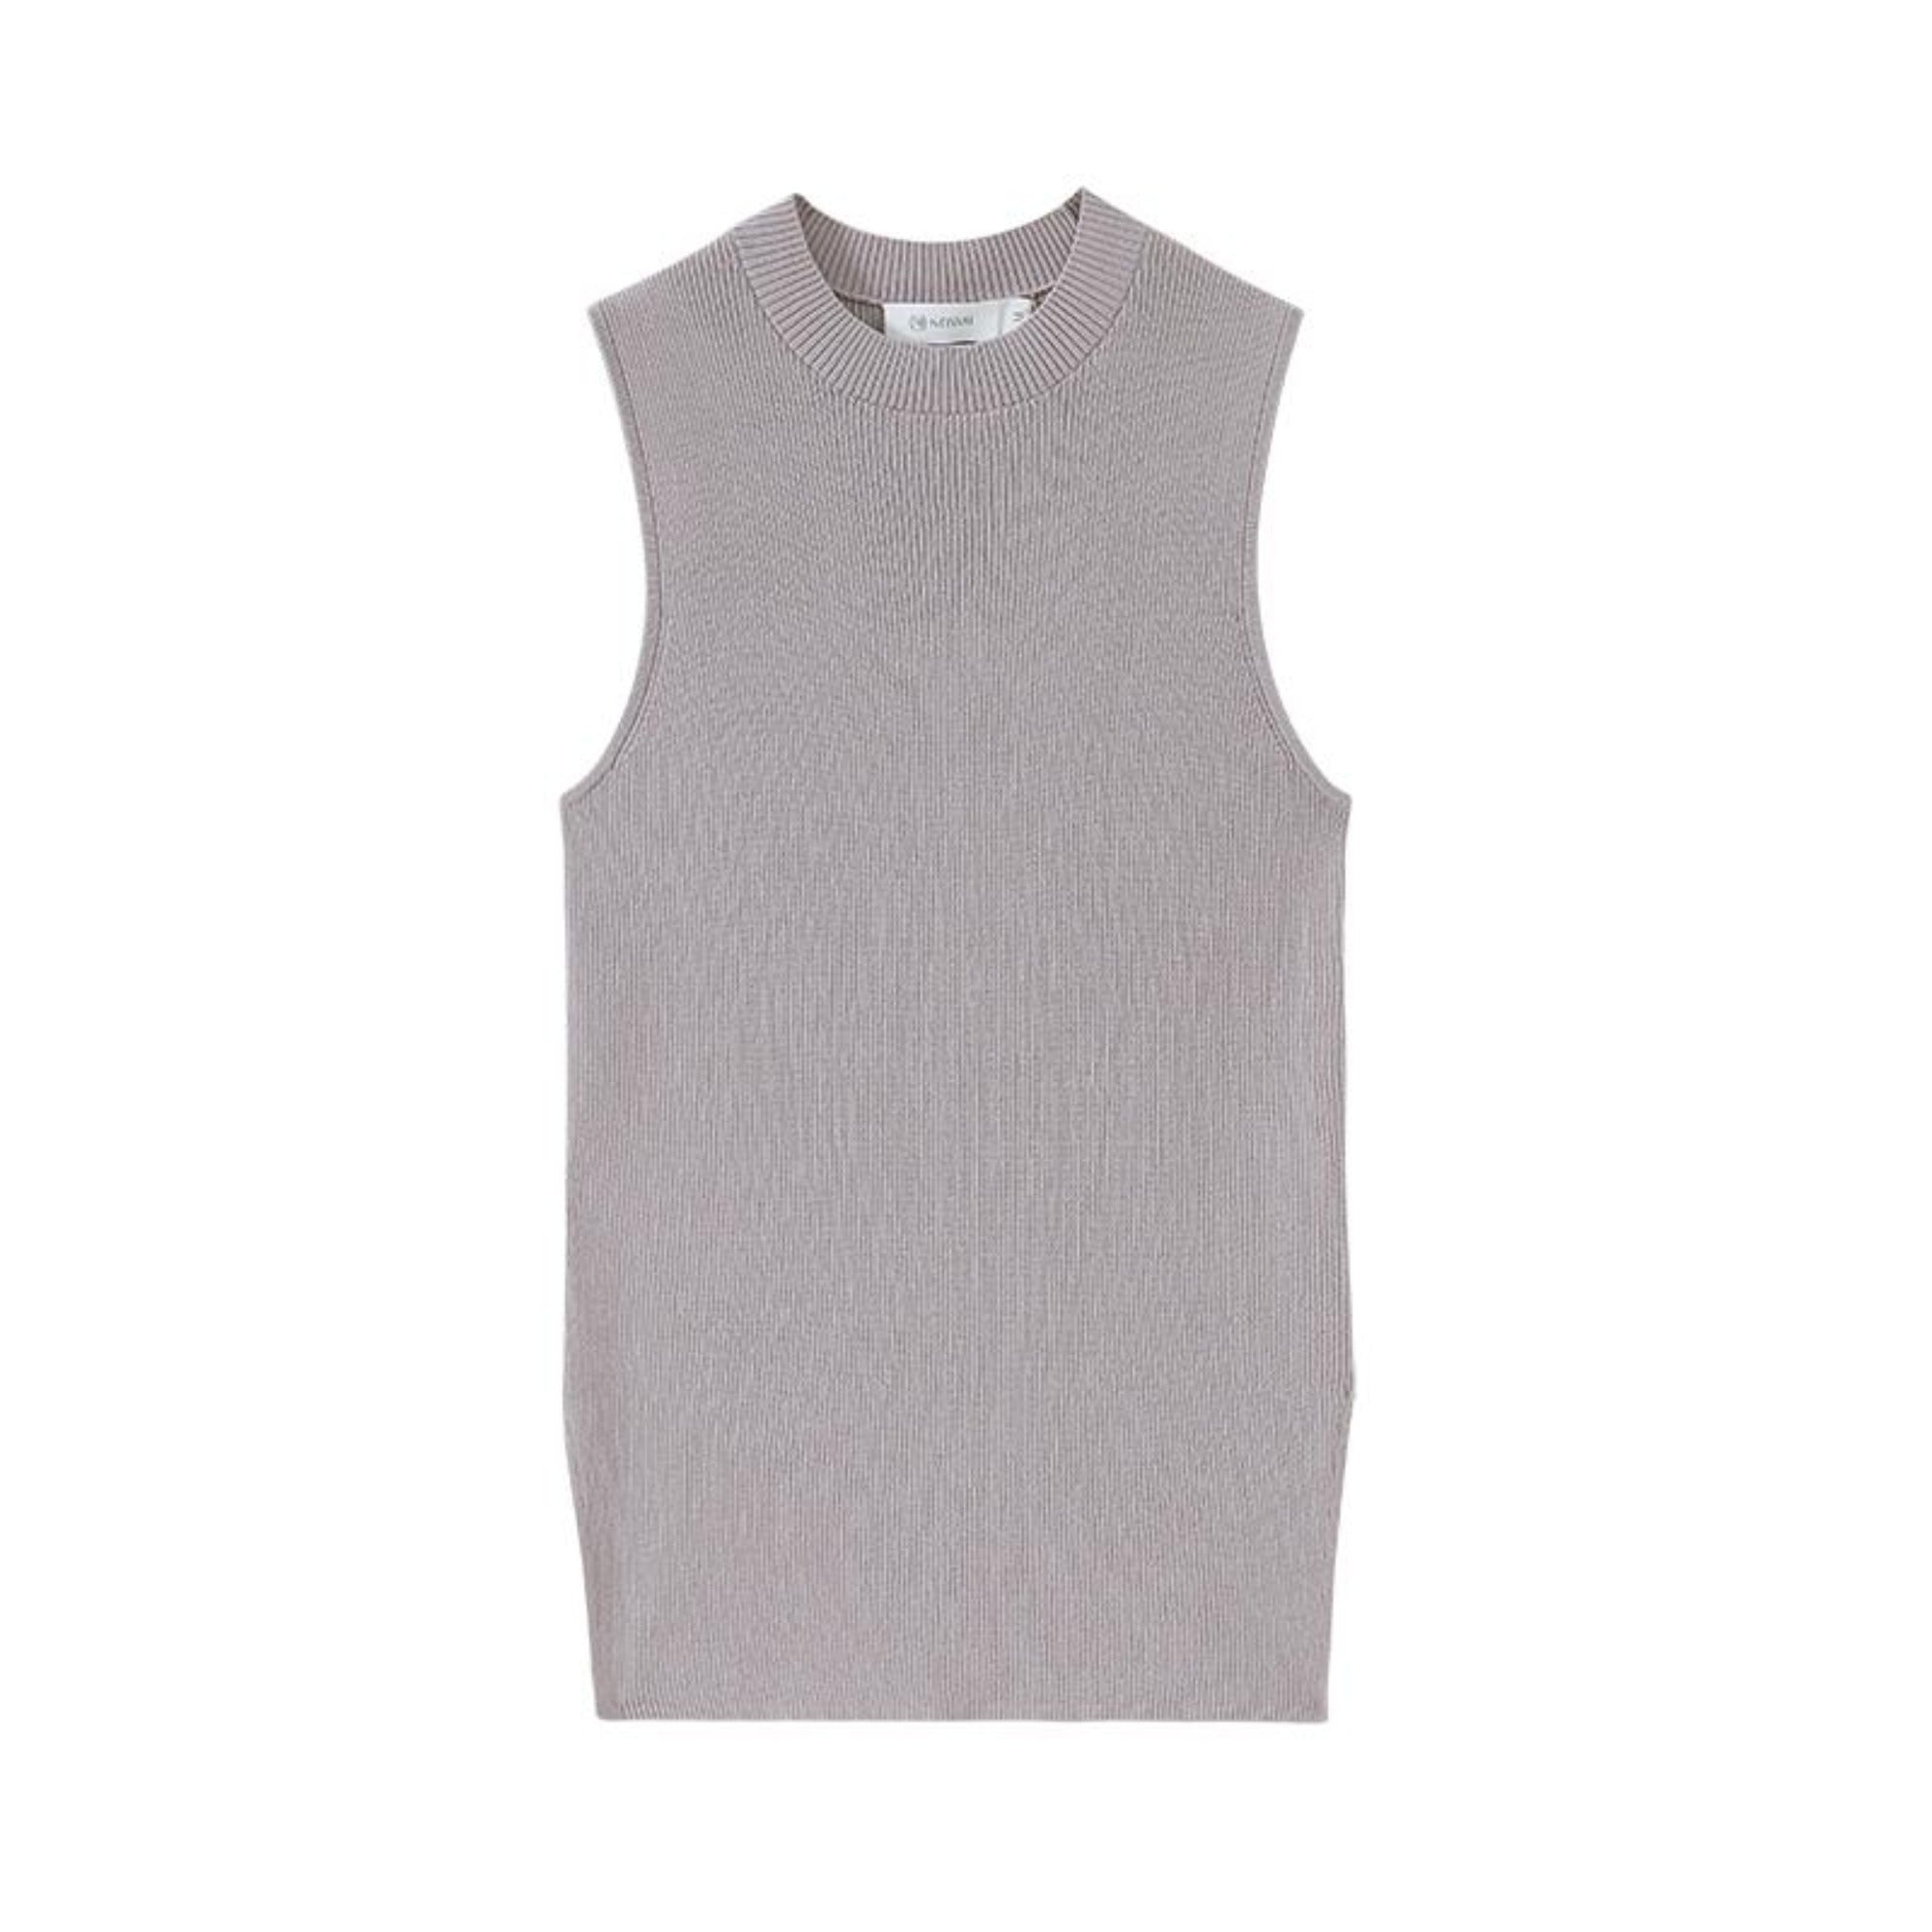 NEIWAI's Knitted Sleeveless Mock Neck Tank Top in Serenity.